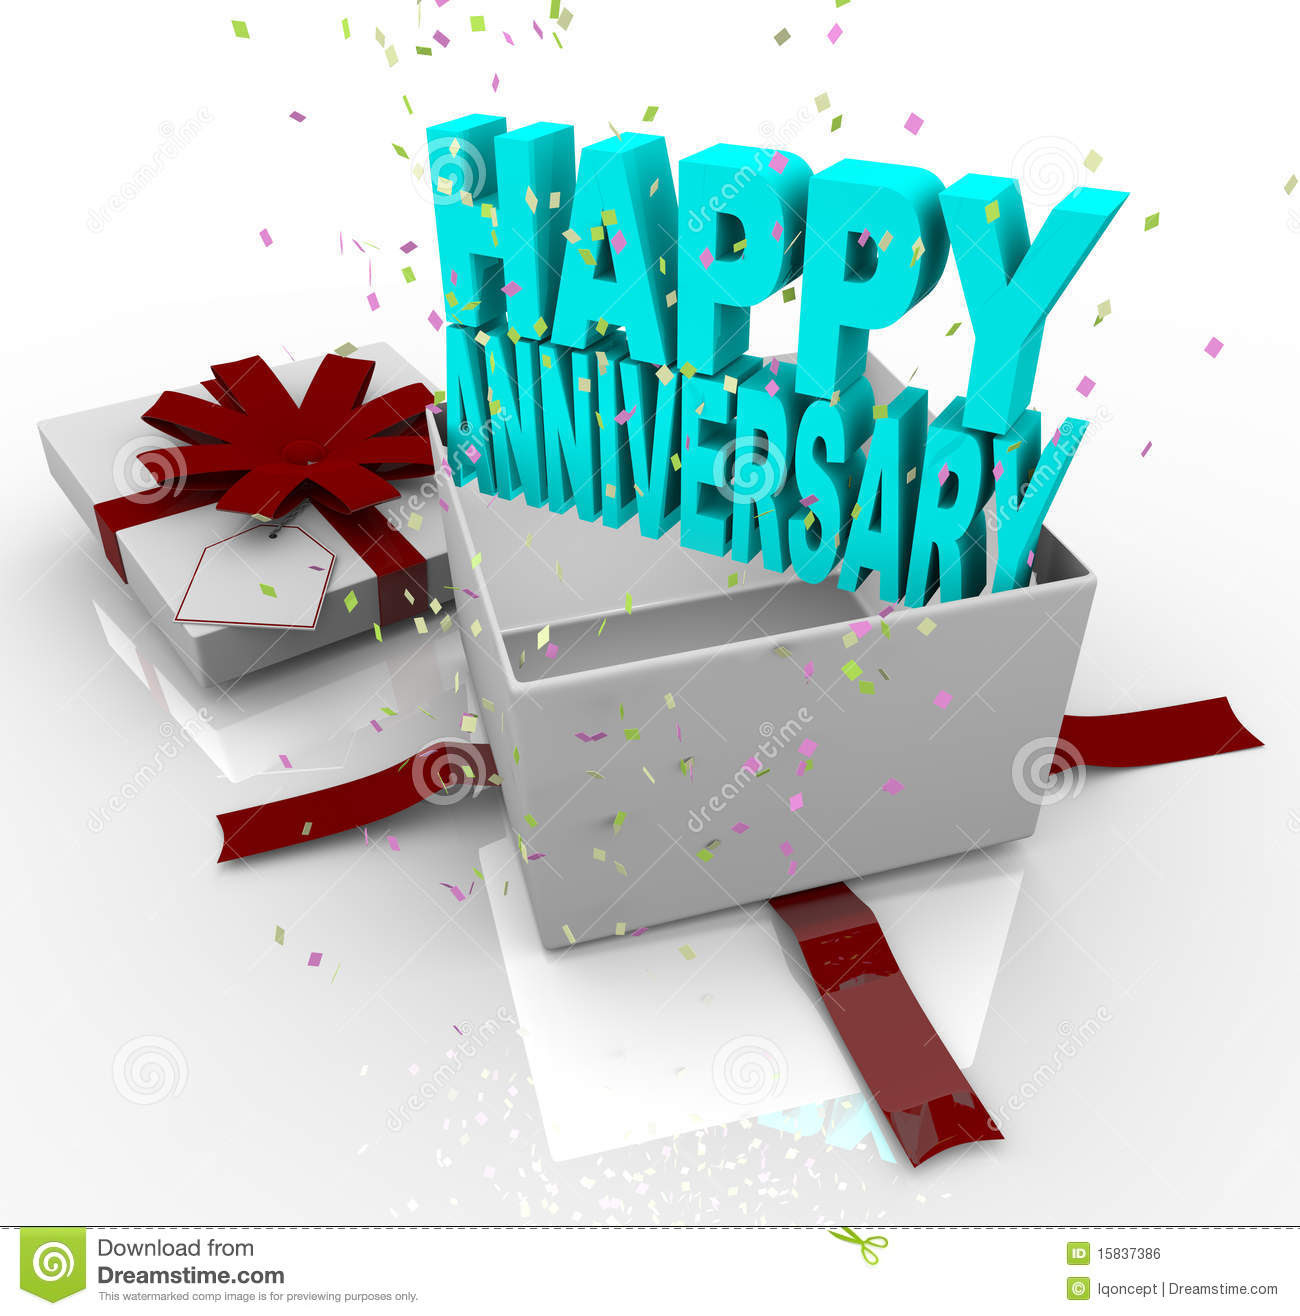 Happy Anniversary Images For Work Free Download Best Happy